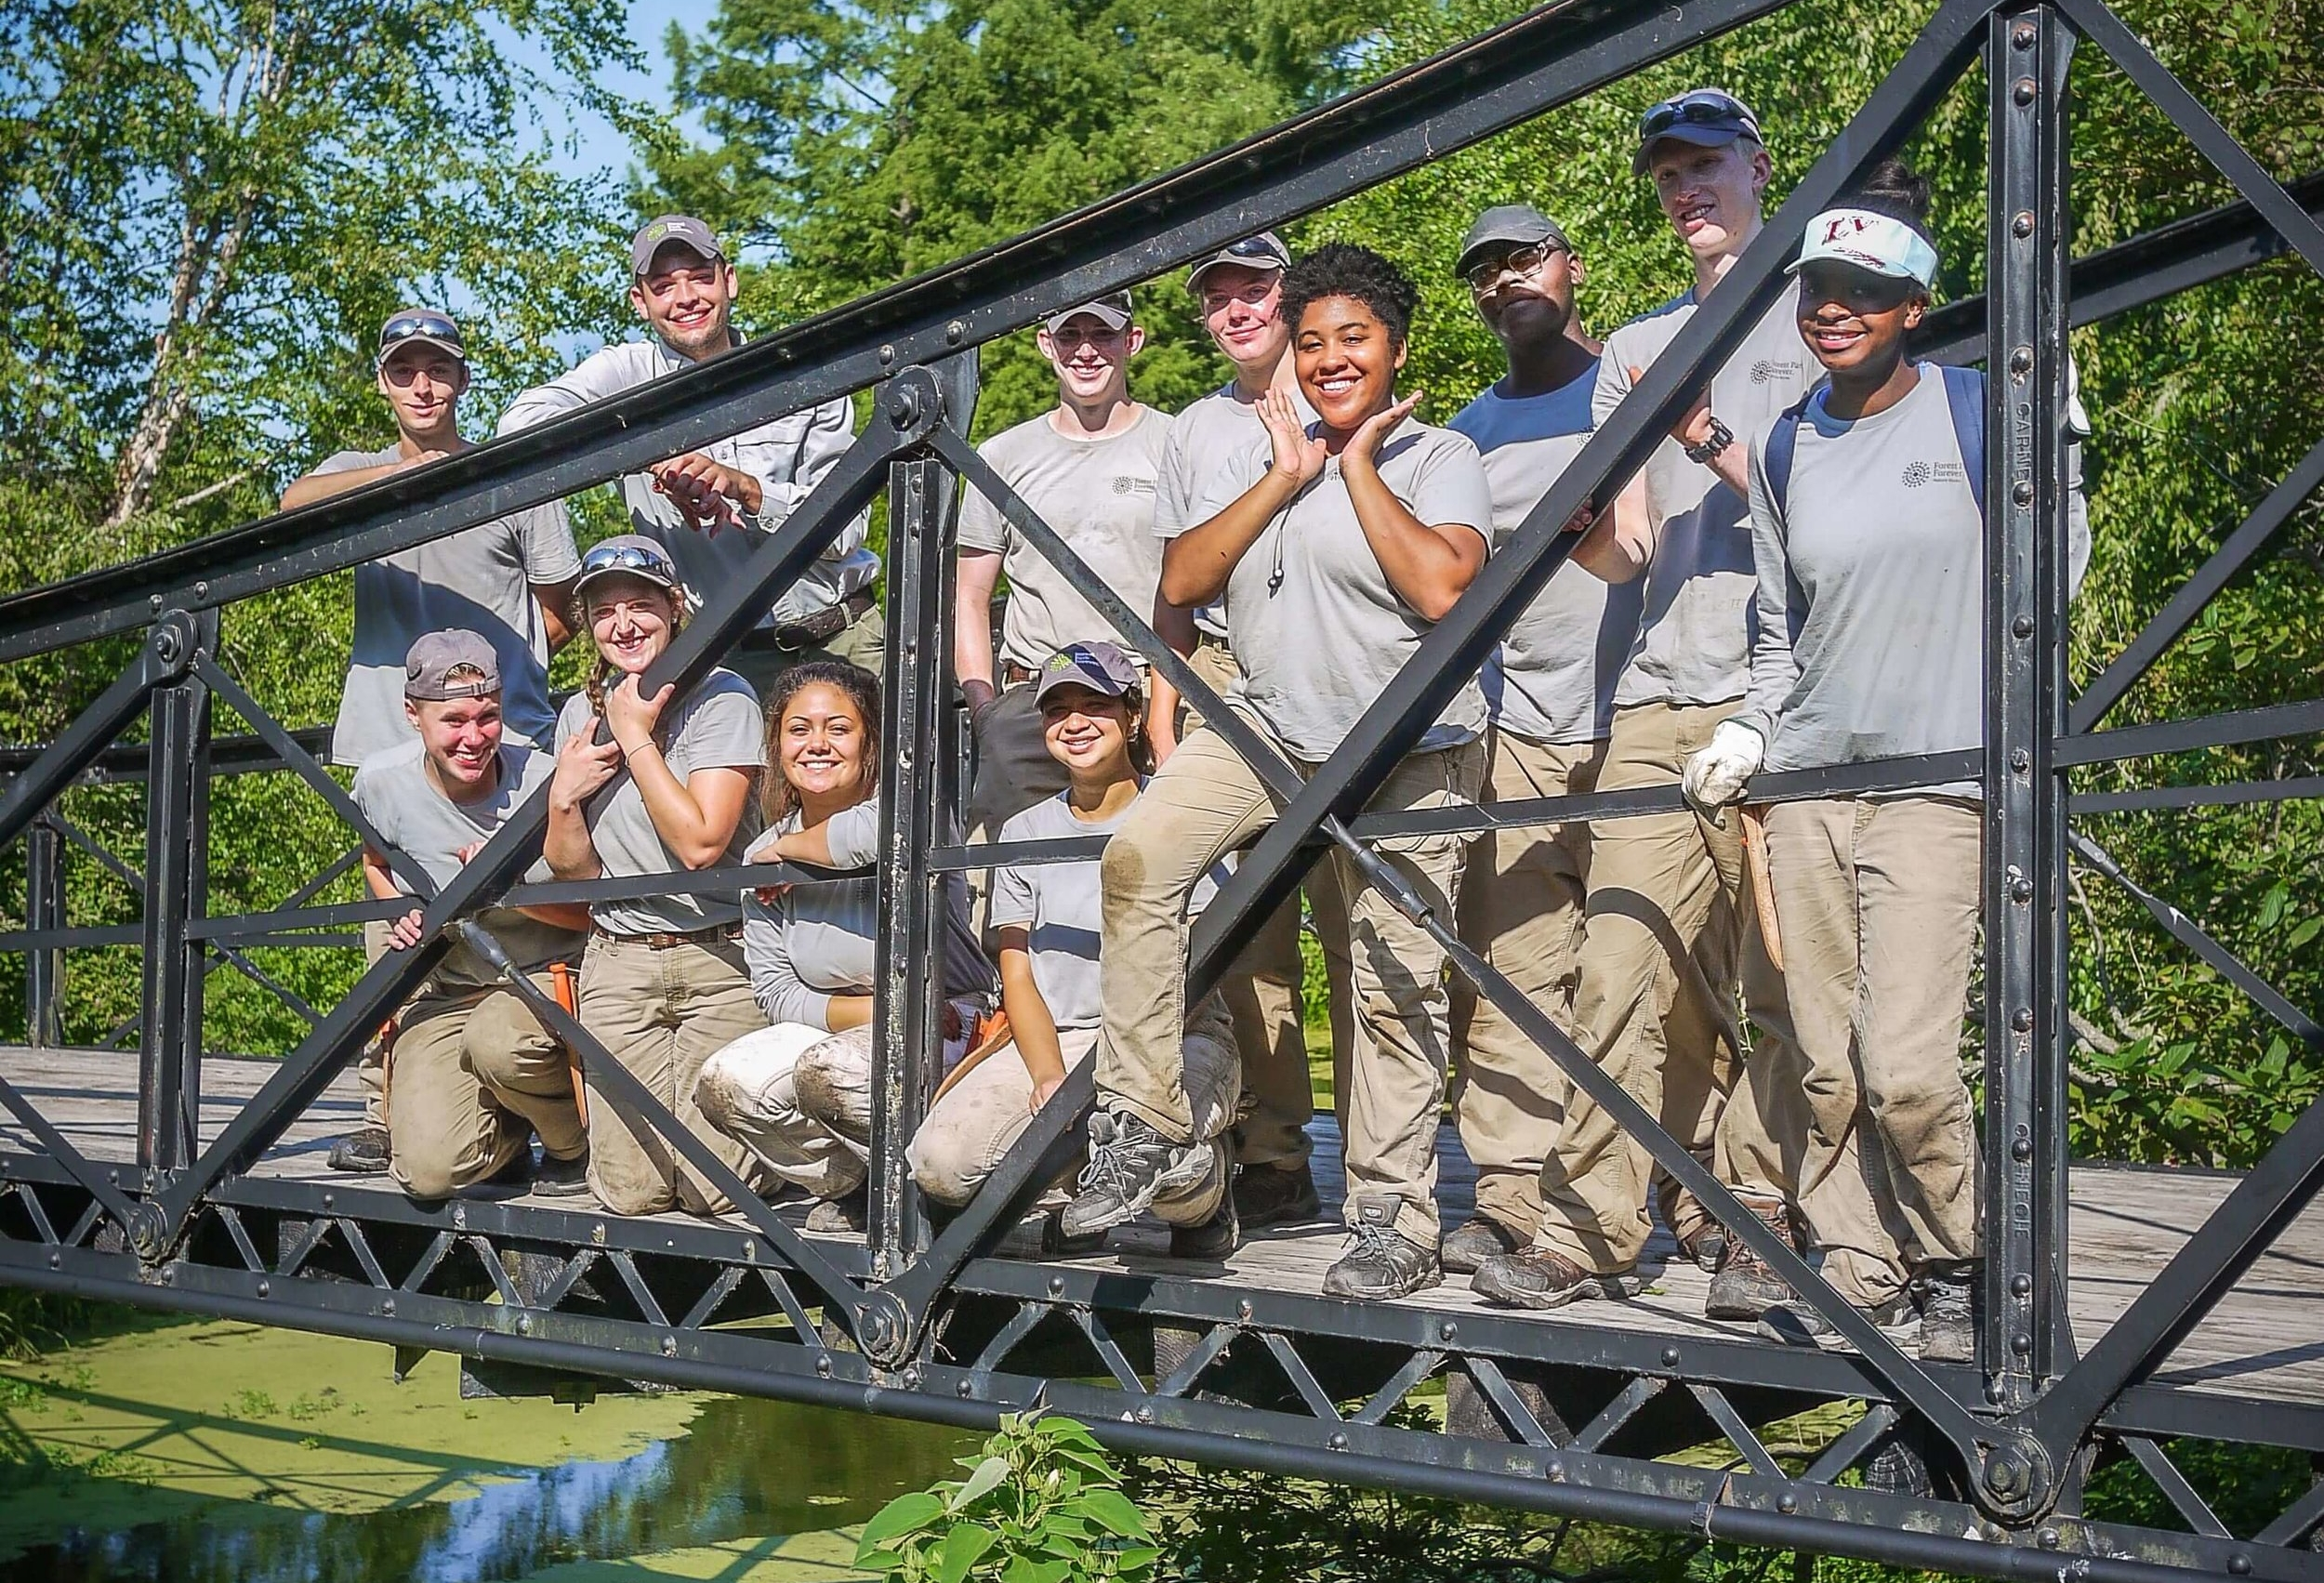 The 2017 Nature Works crew